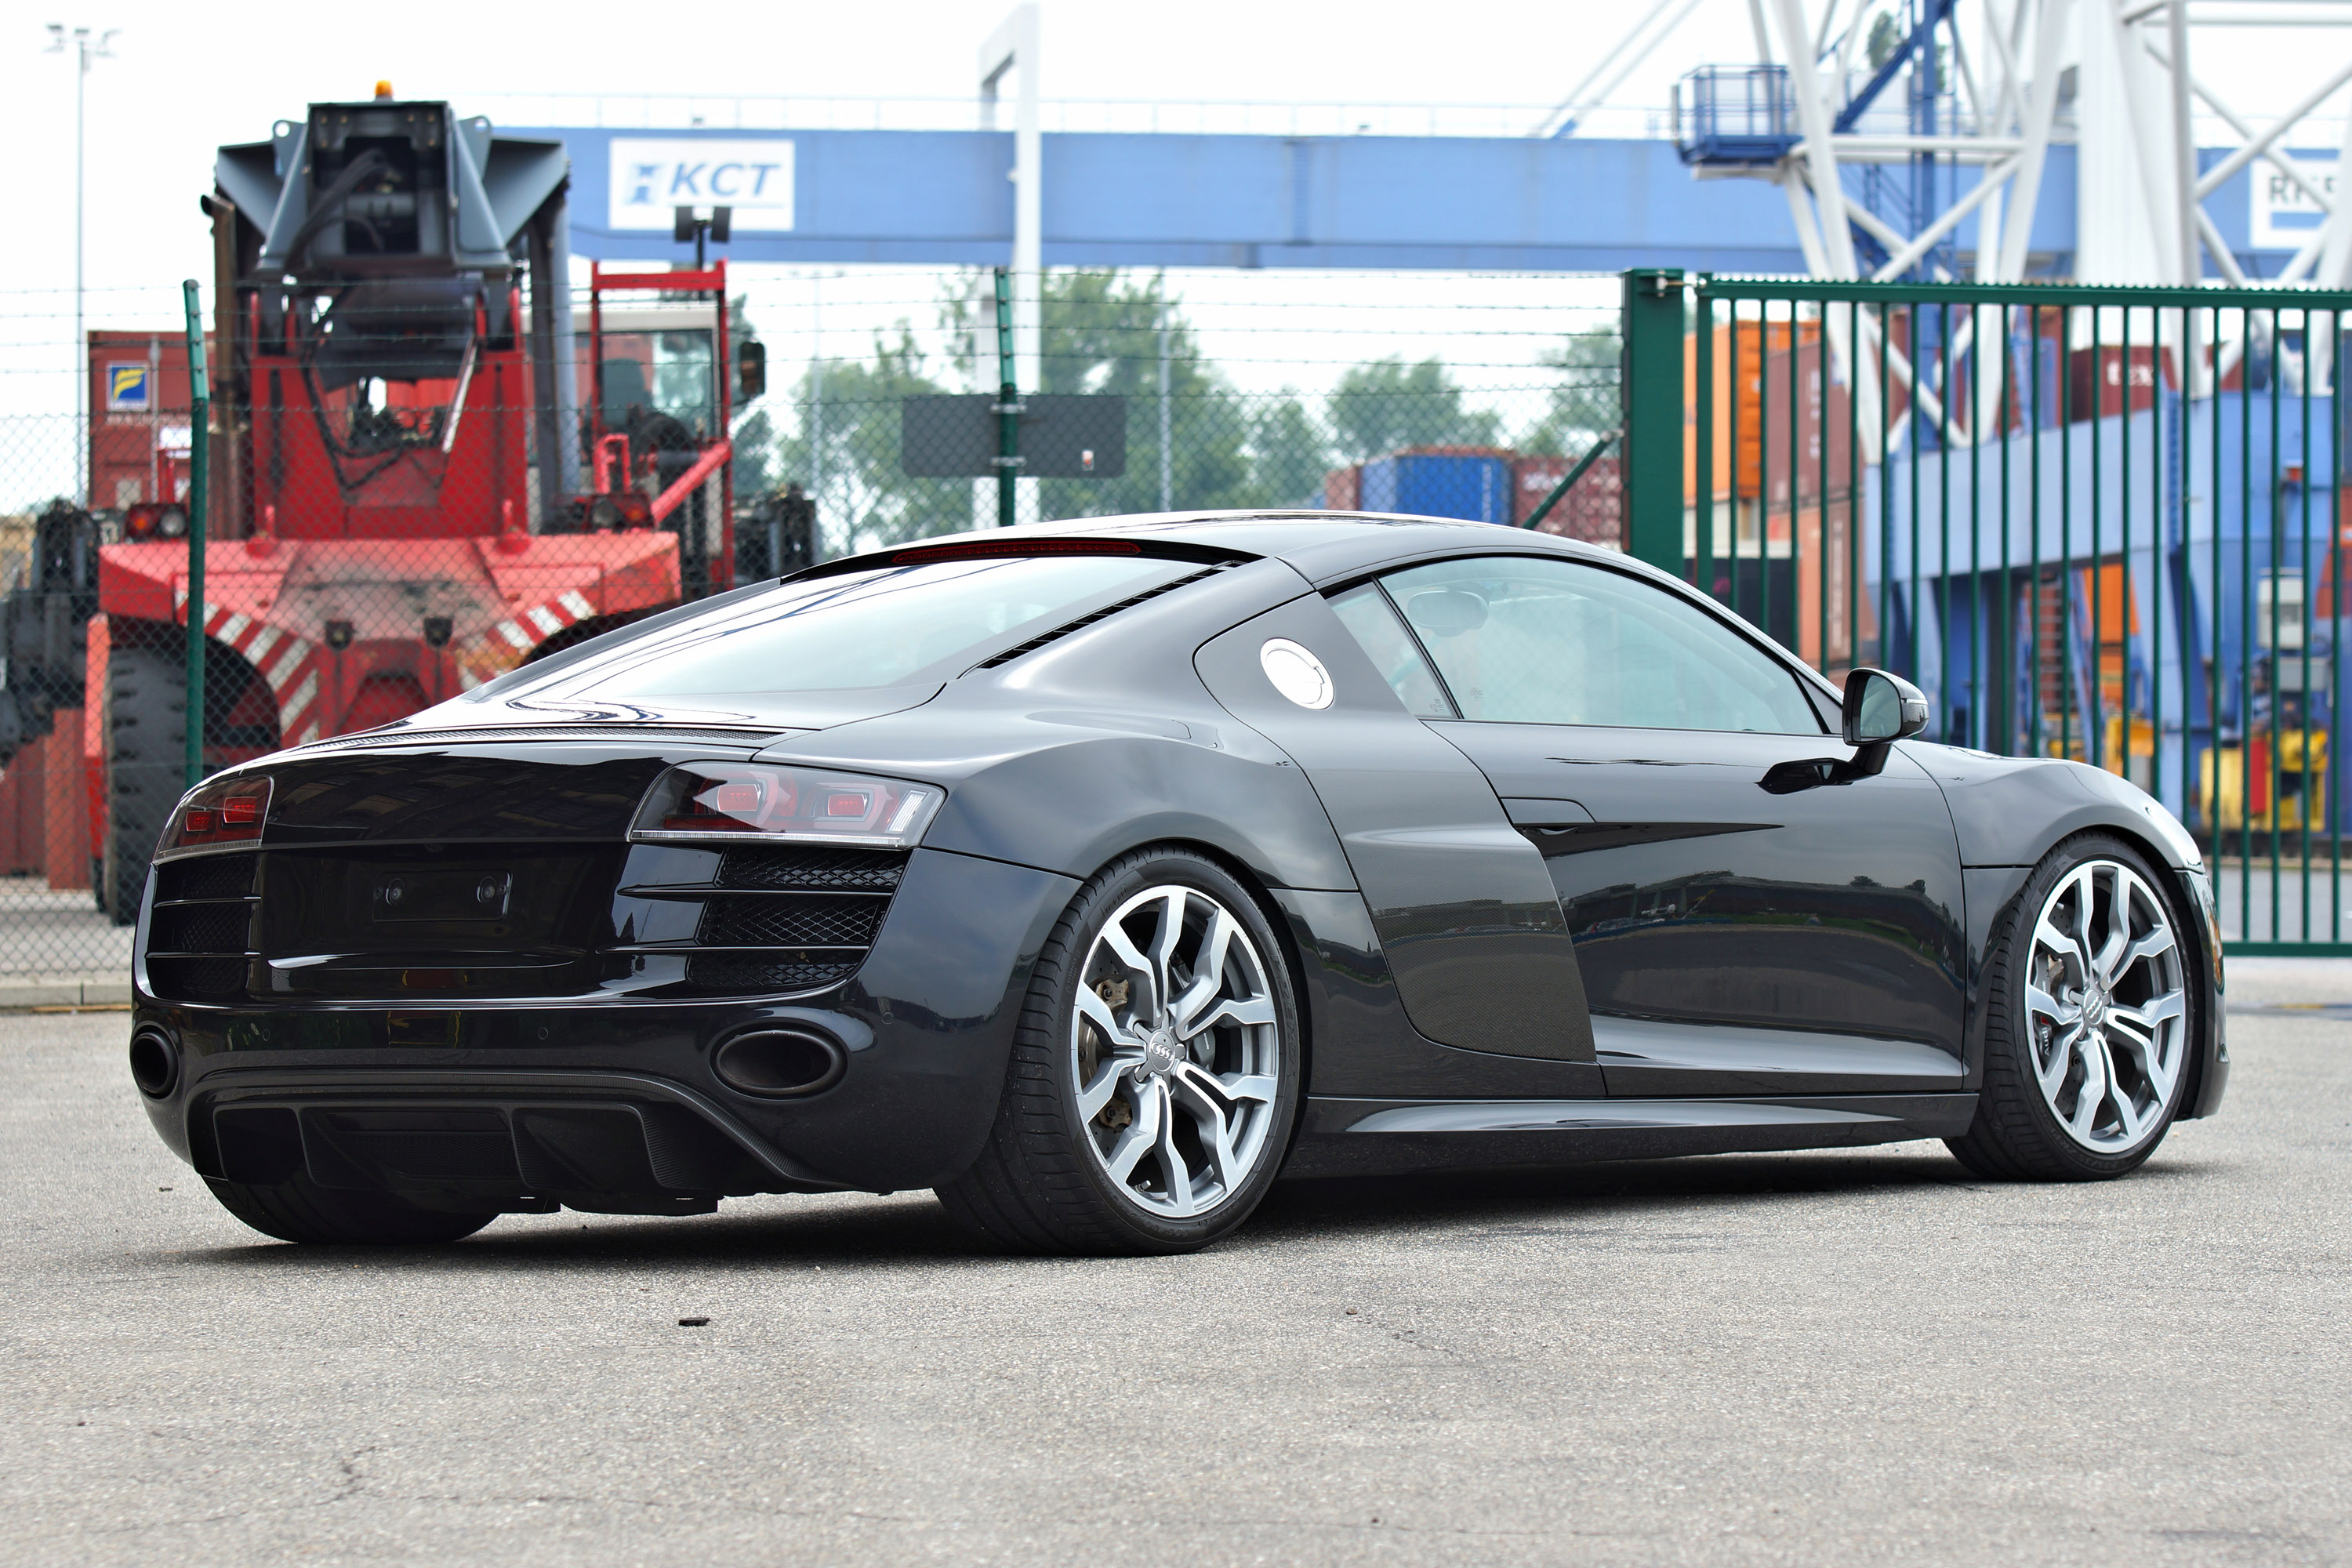 OK Chiptuning Audi R8 V10 Coupe Picture